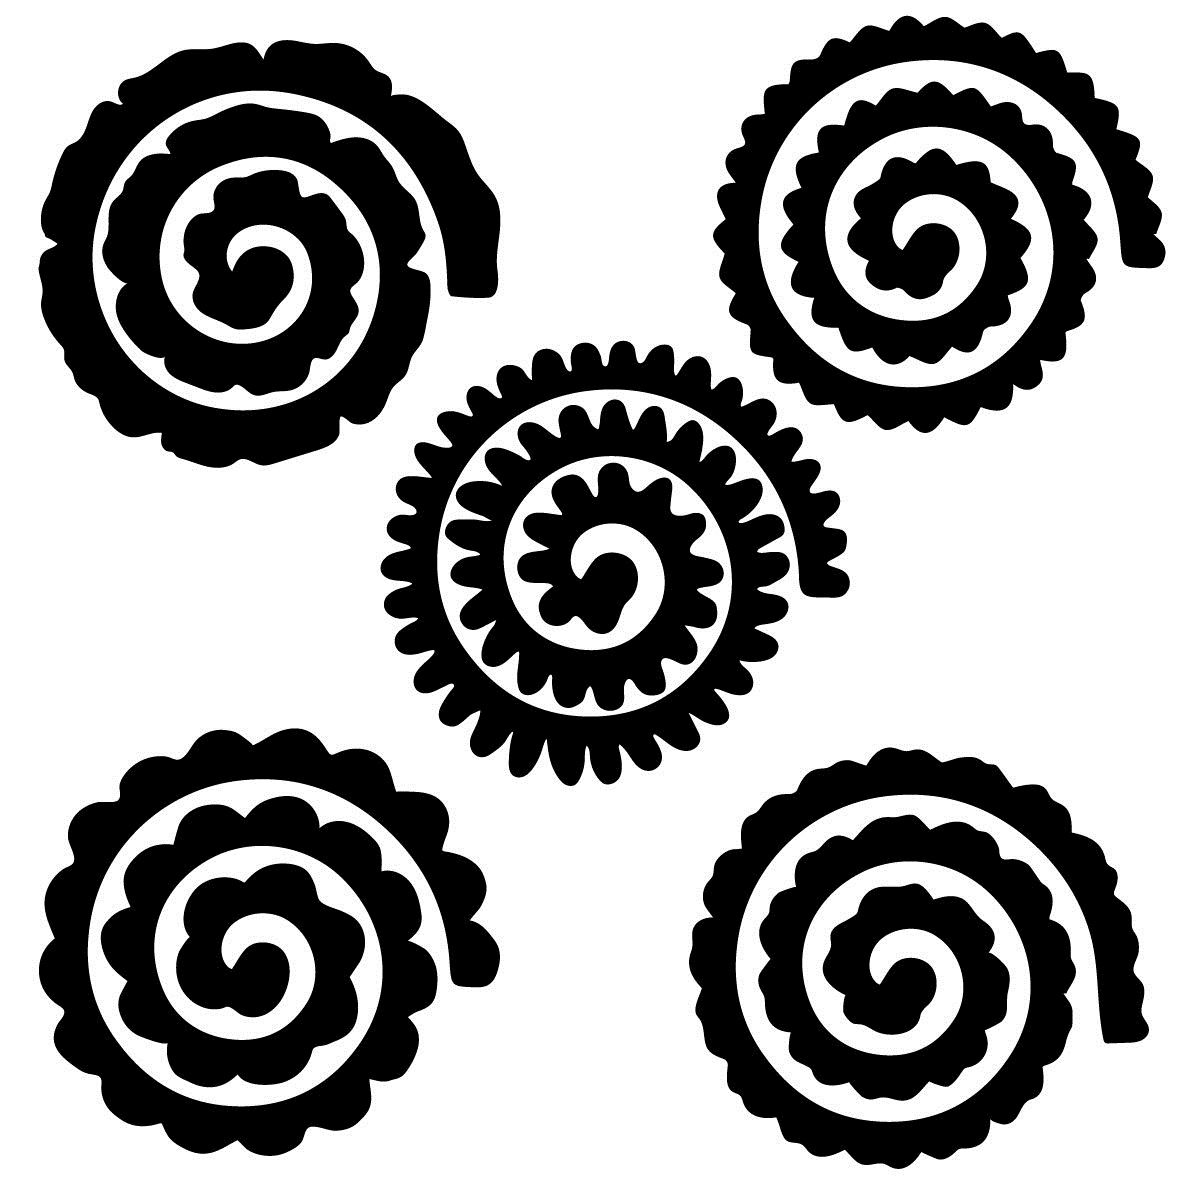 002 Remarkable Free Rolled Paper Flower Template For Cricut Inspiration Full